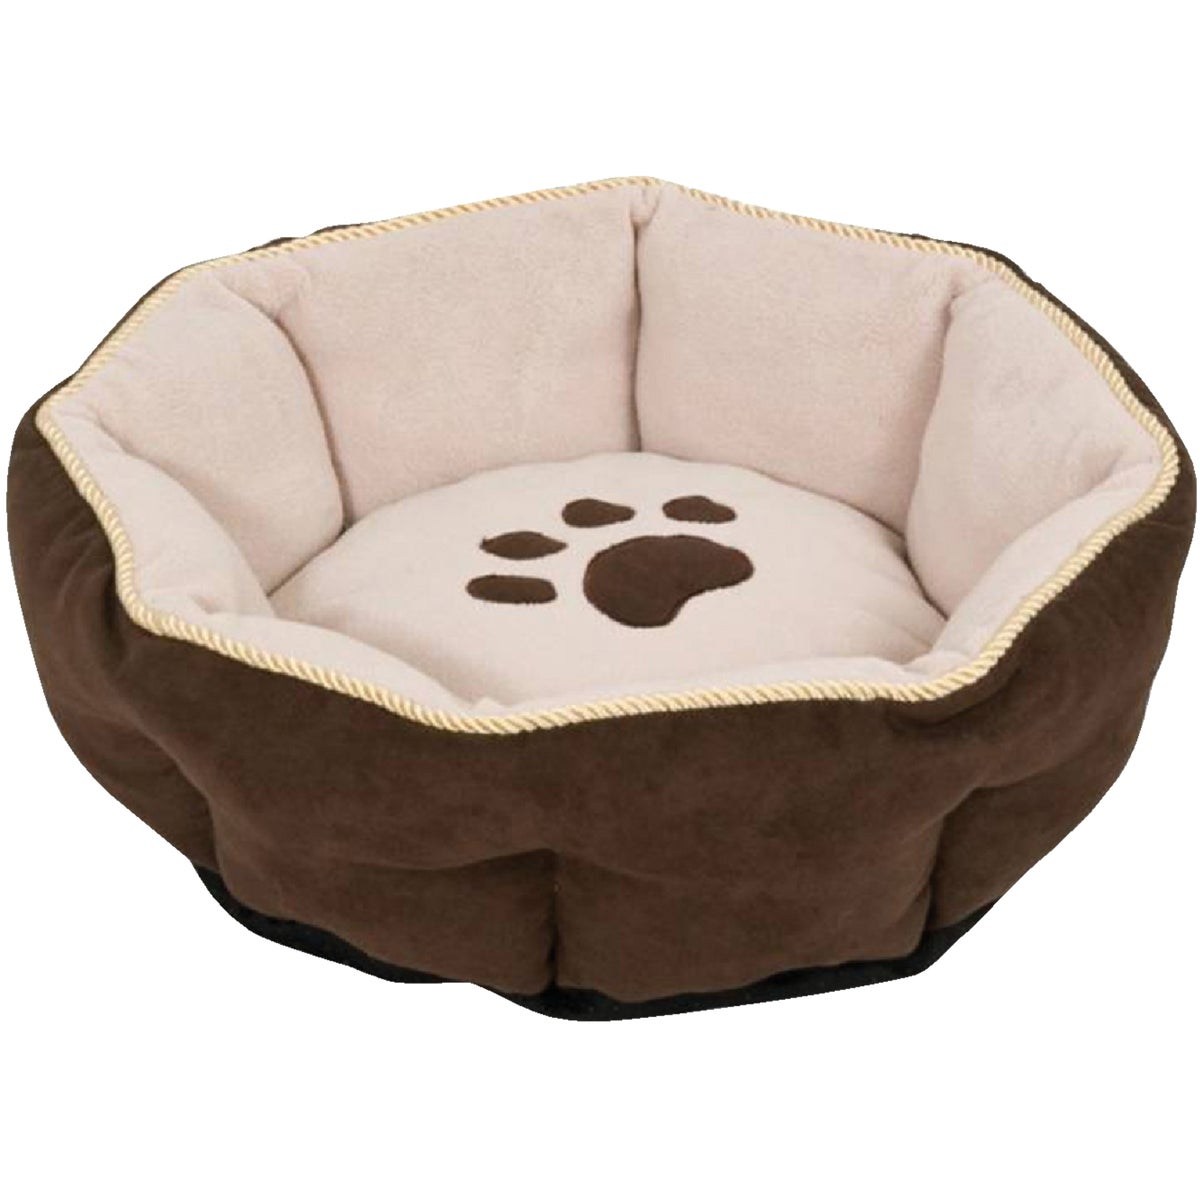 "18"" ROUND PET BED - 26542 by Petmate Doskocil"